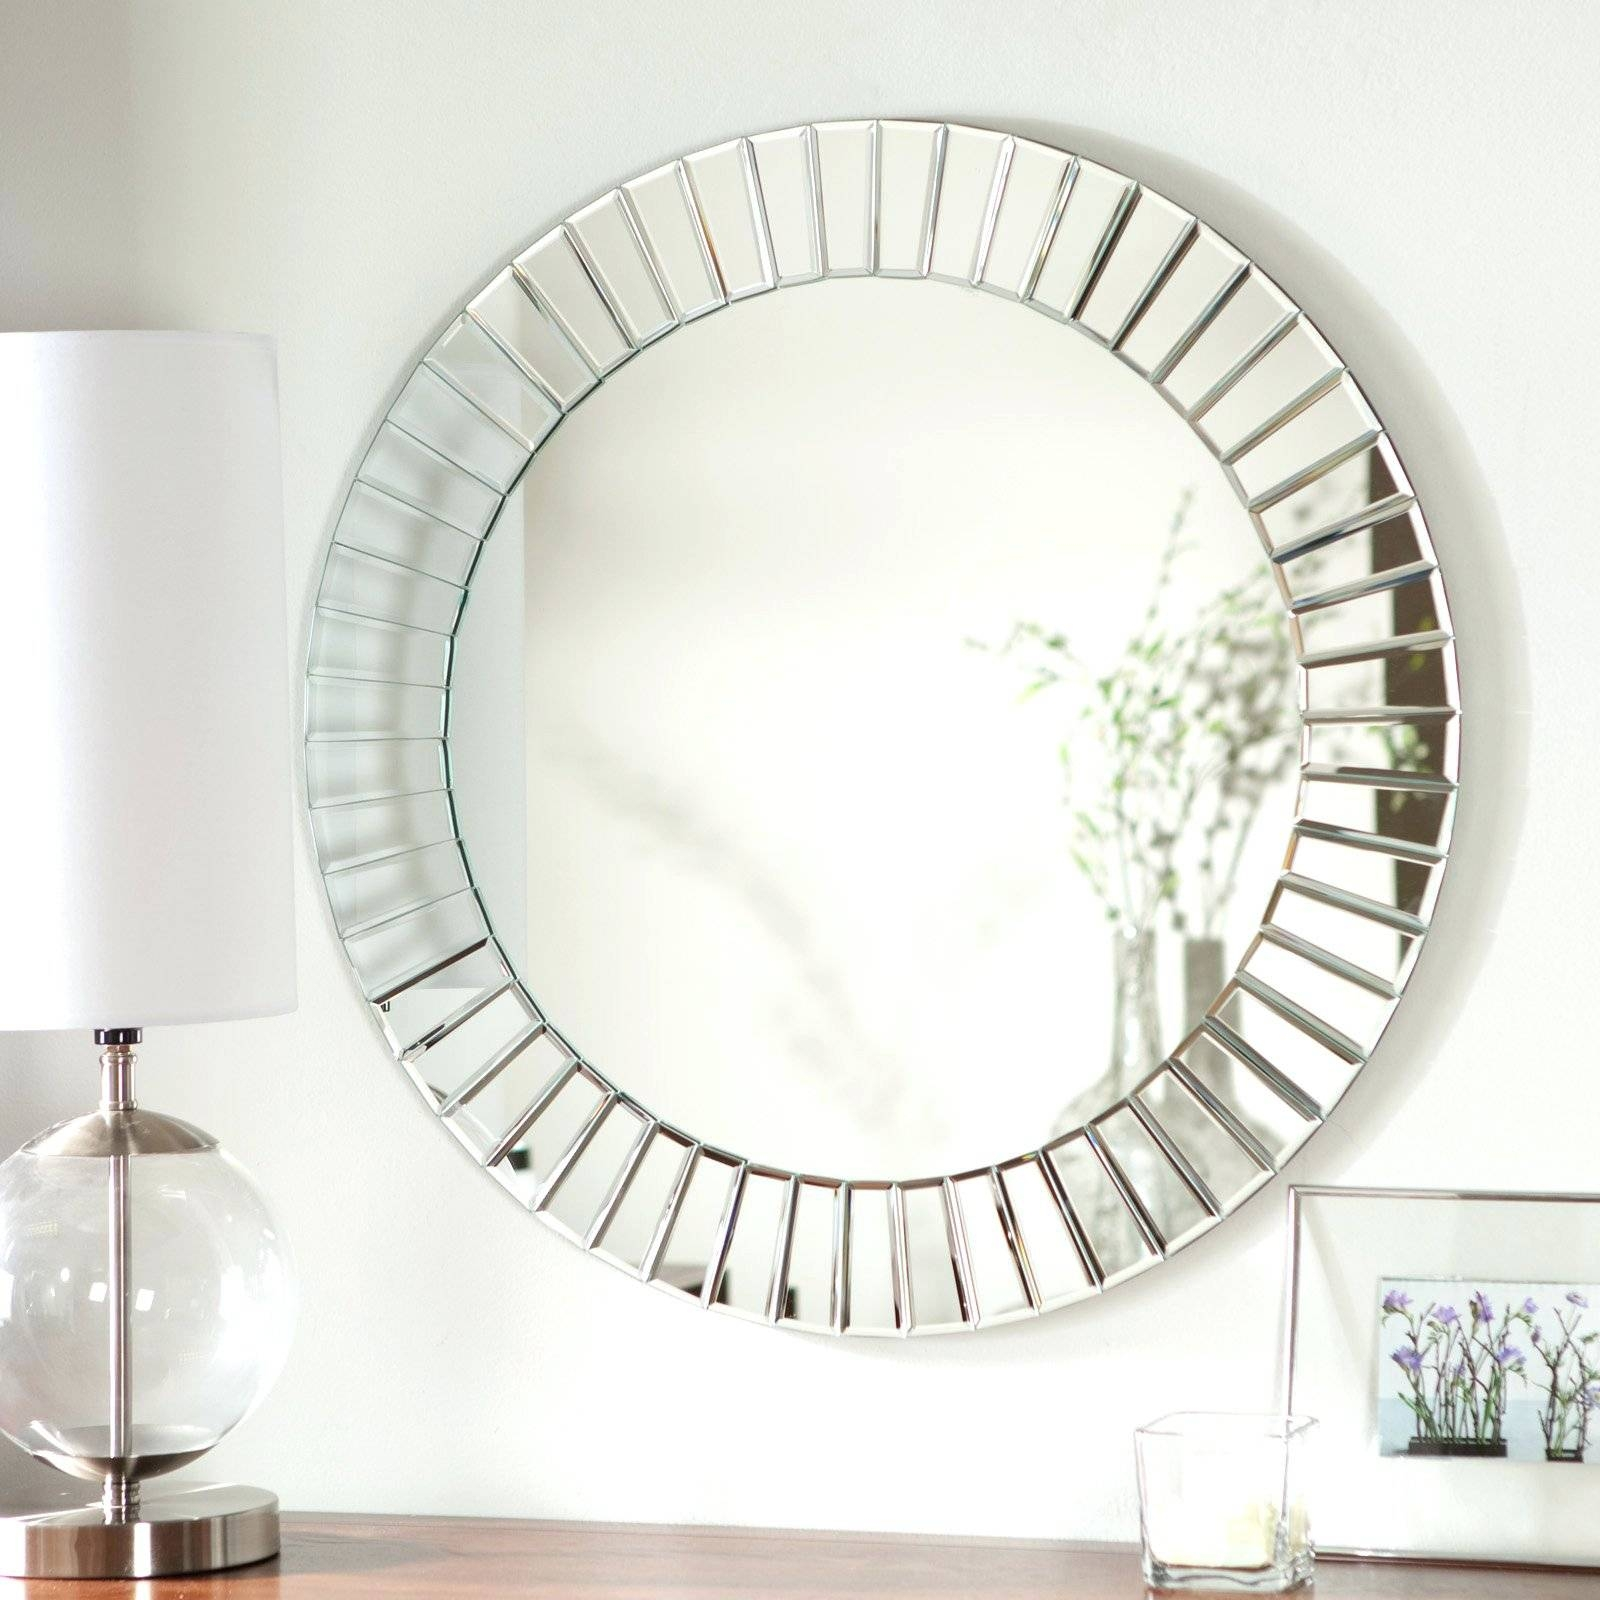 2018 best of round mosaic wall mirrors wall mirrors round mirror with rope strap full size of pertaining to round mosaic wall amipublicfo Image collections